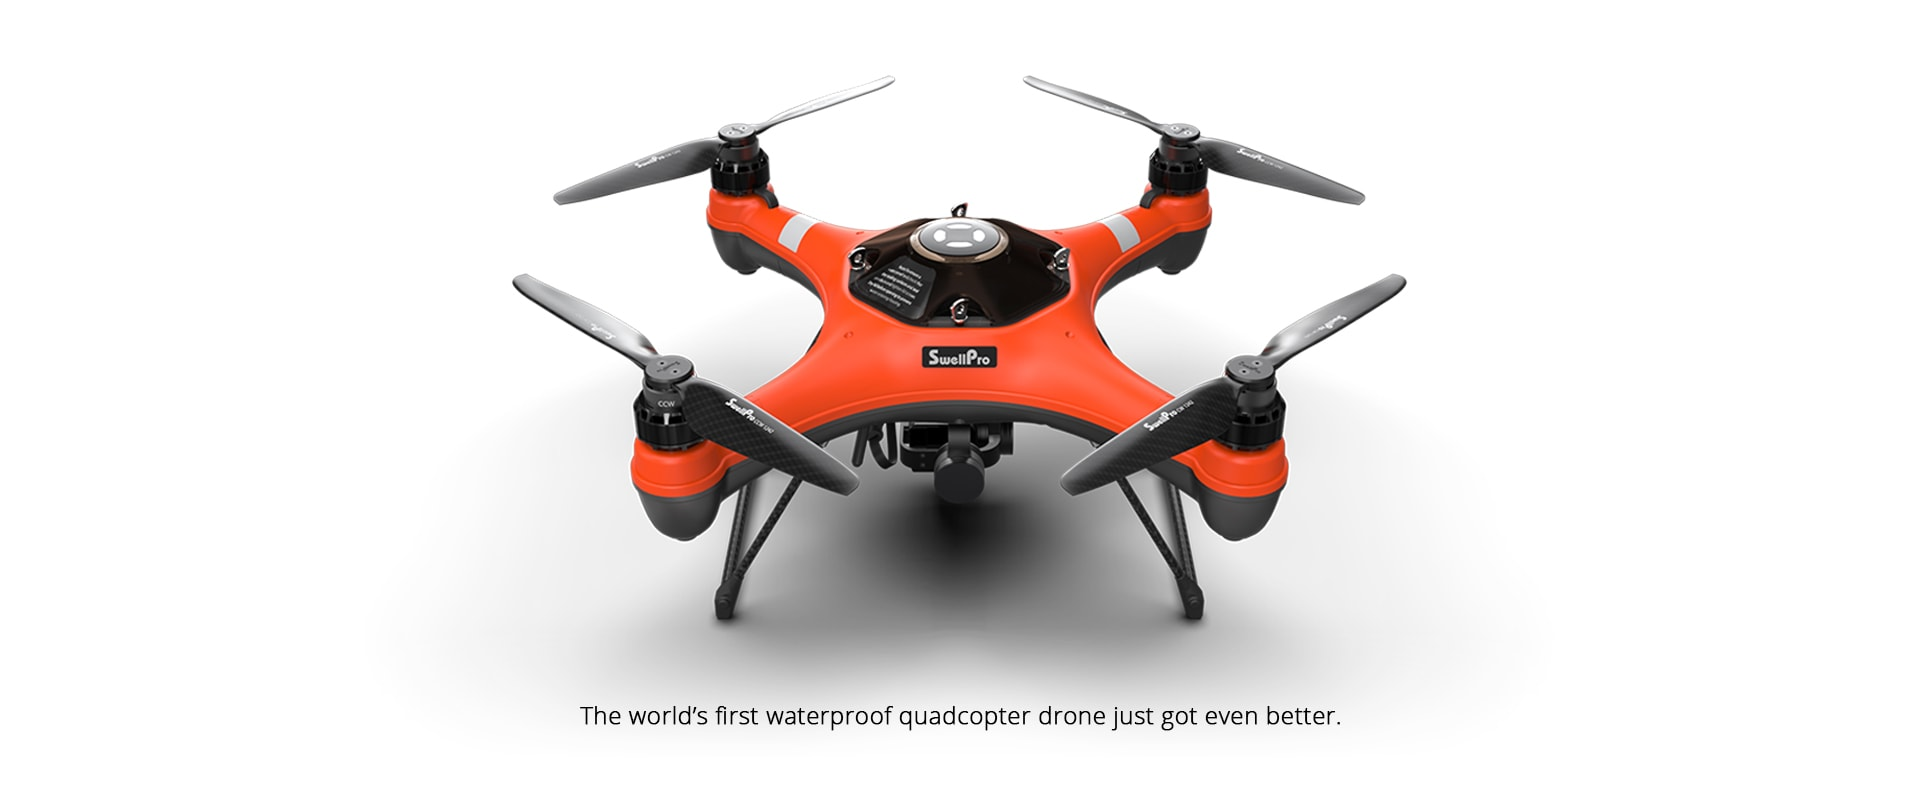 Swellpro Splash Drone 3 Plus